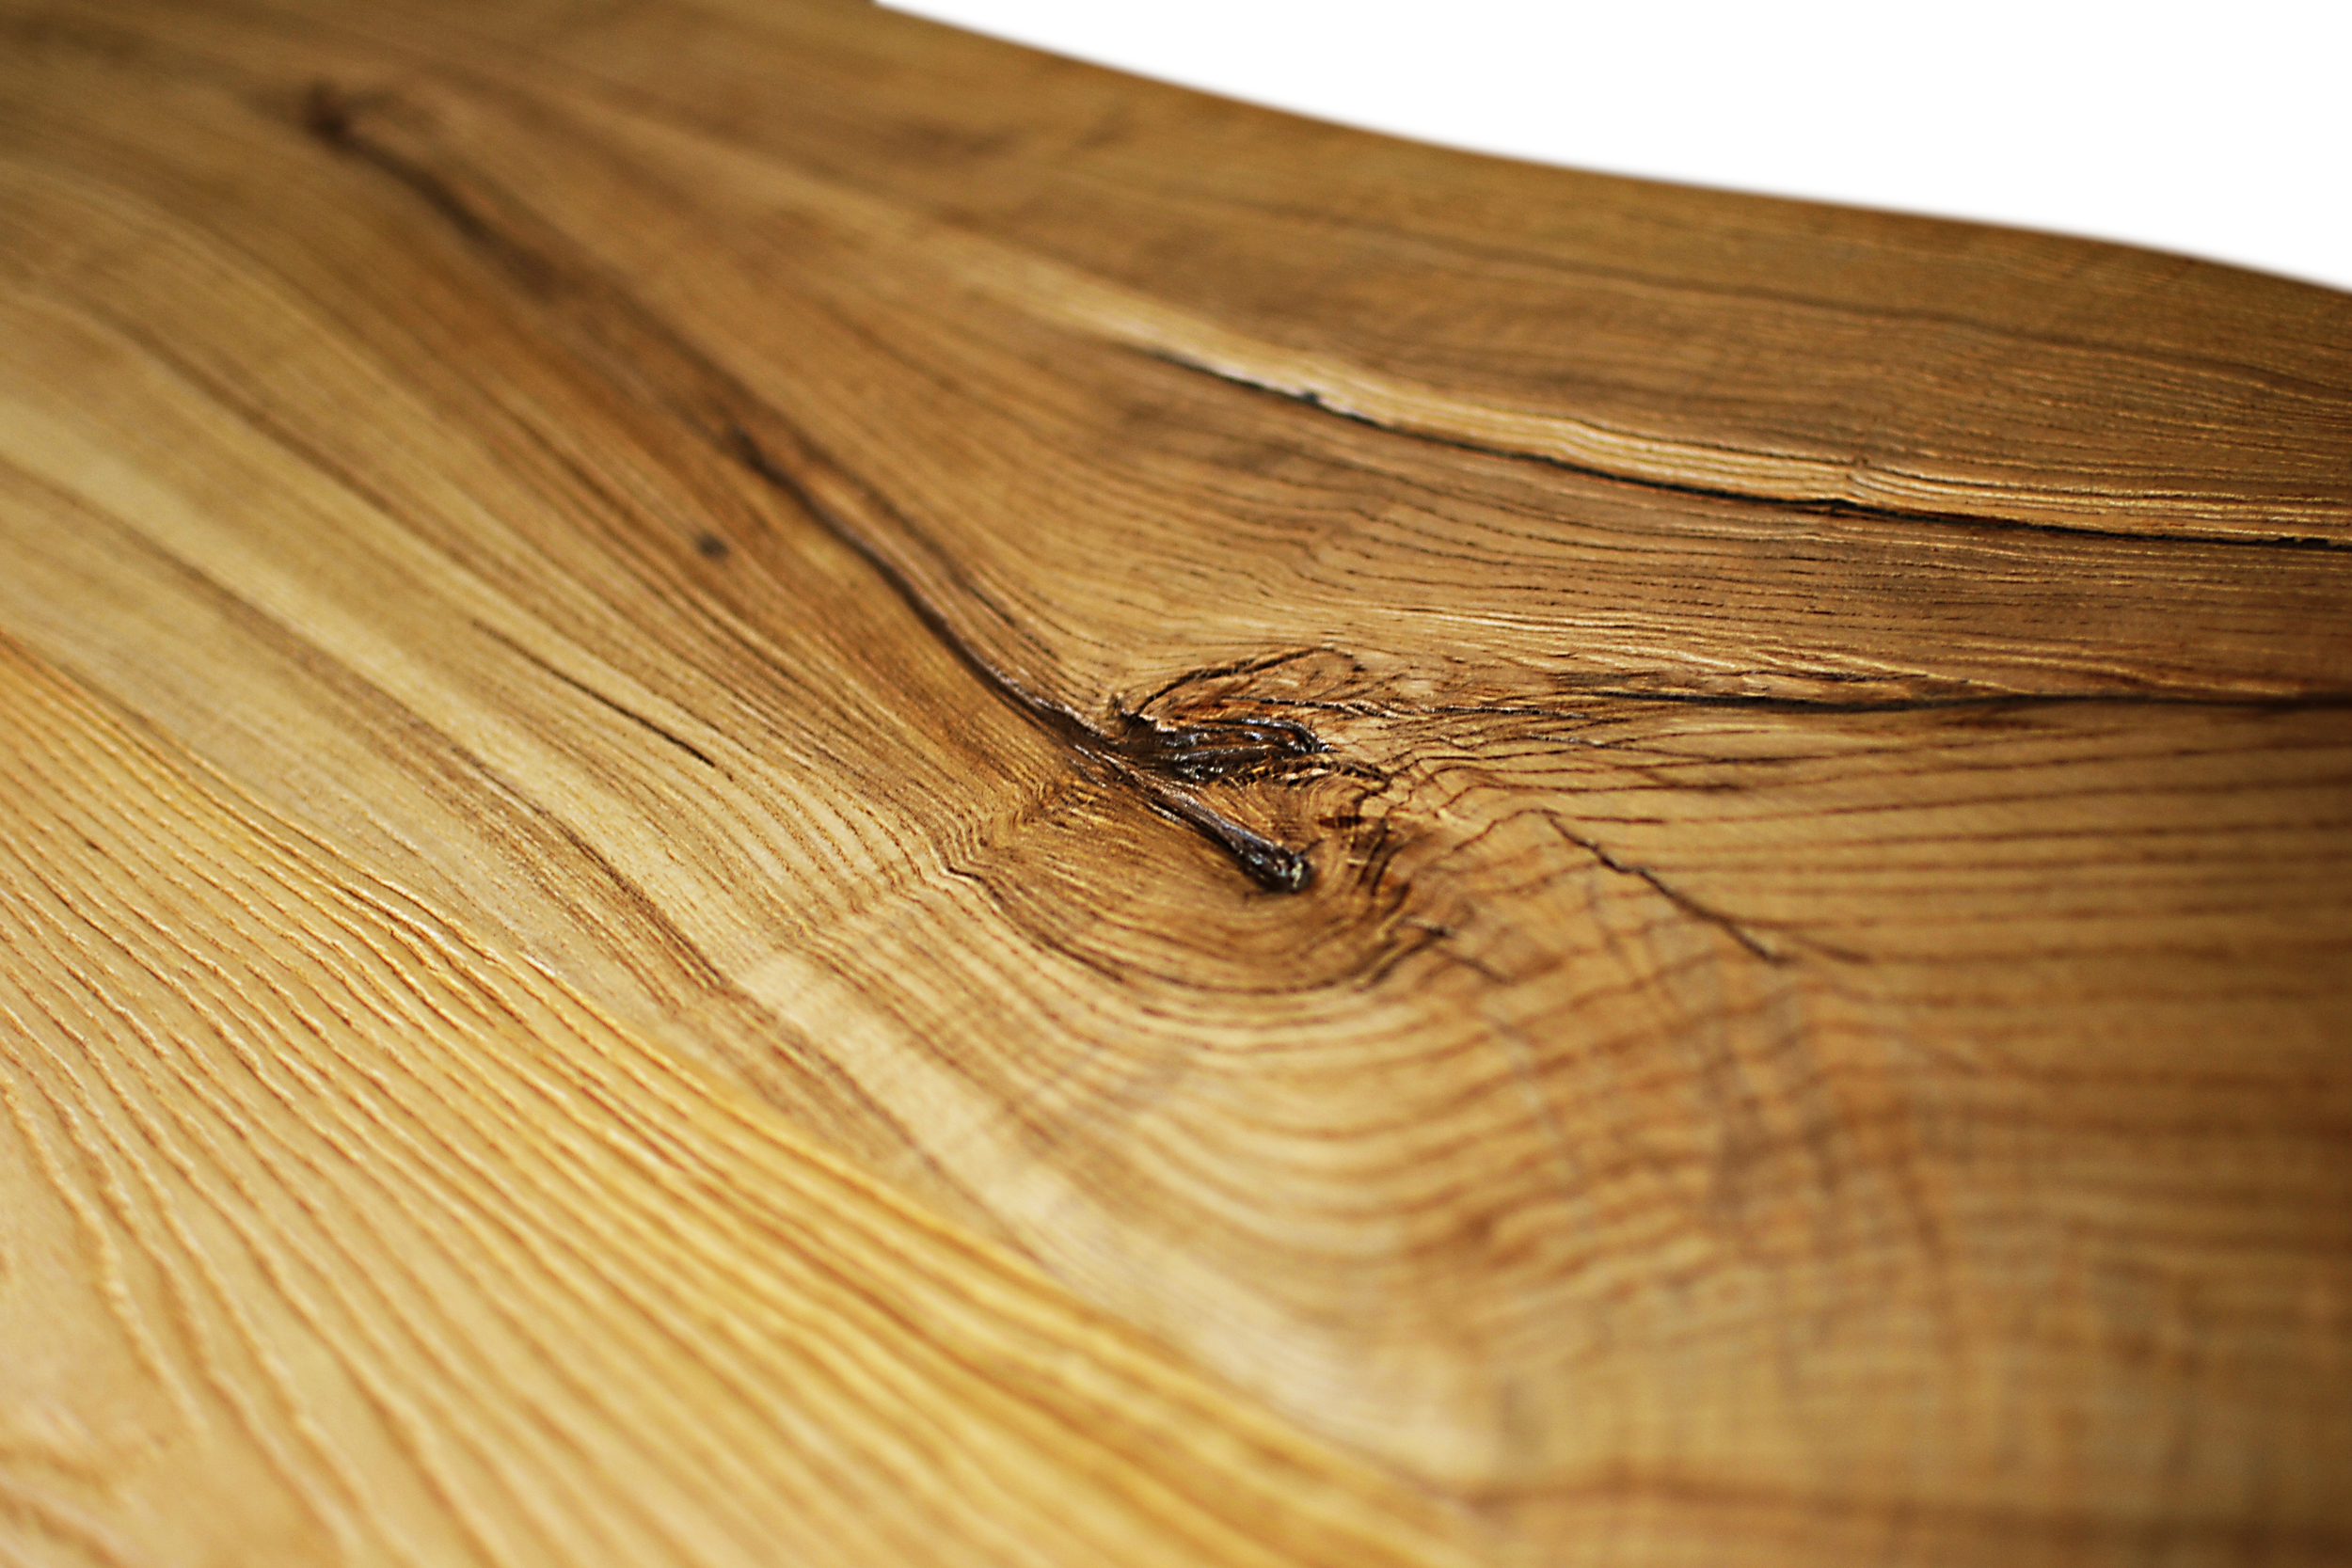 Etz & Steel Chardonnay Live Edge Table Close Up 3.JPG